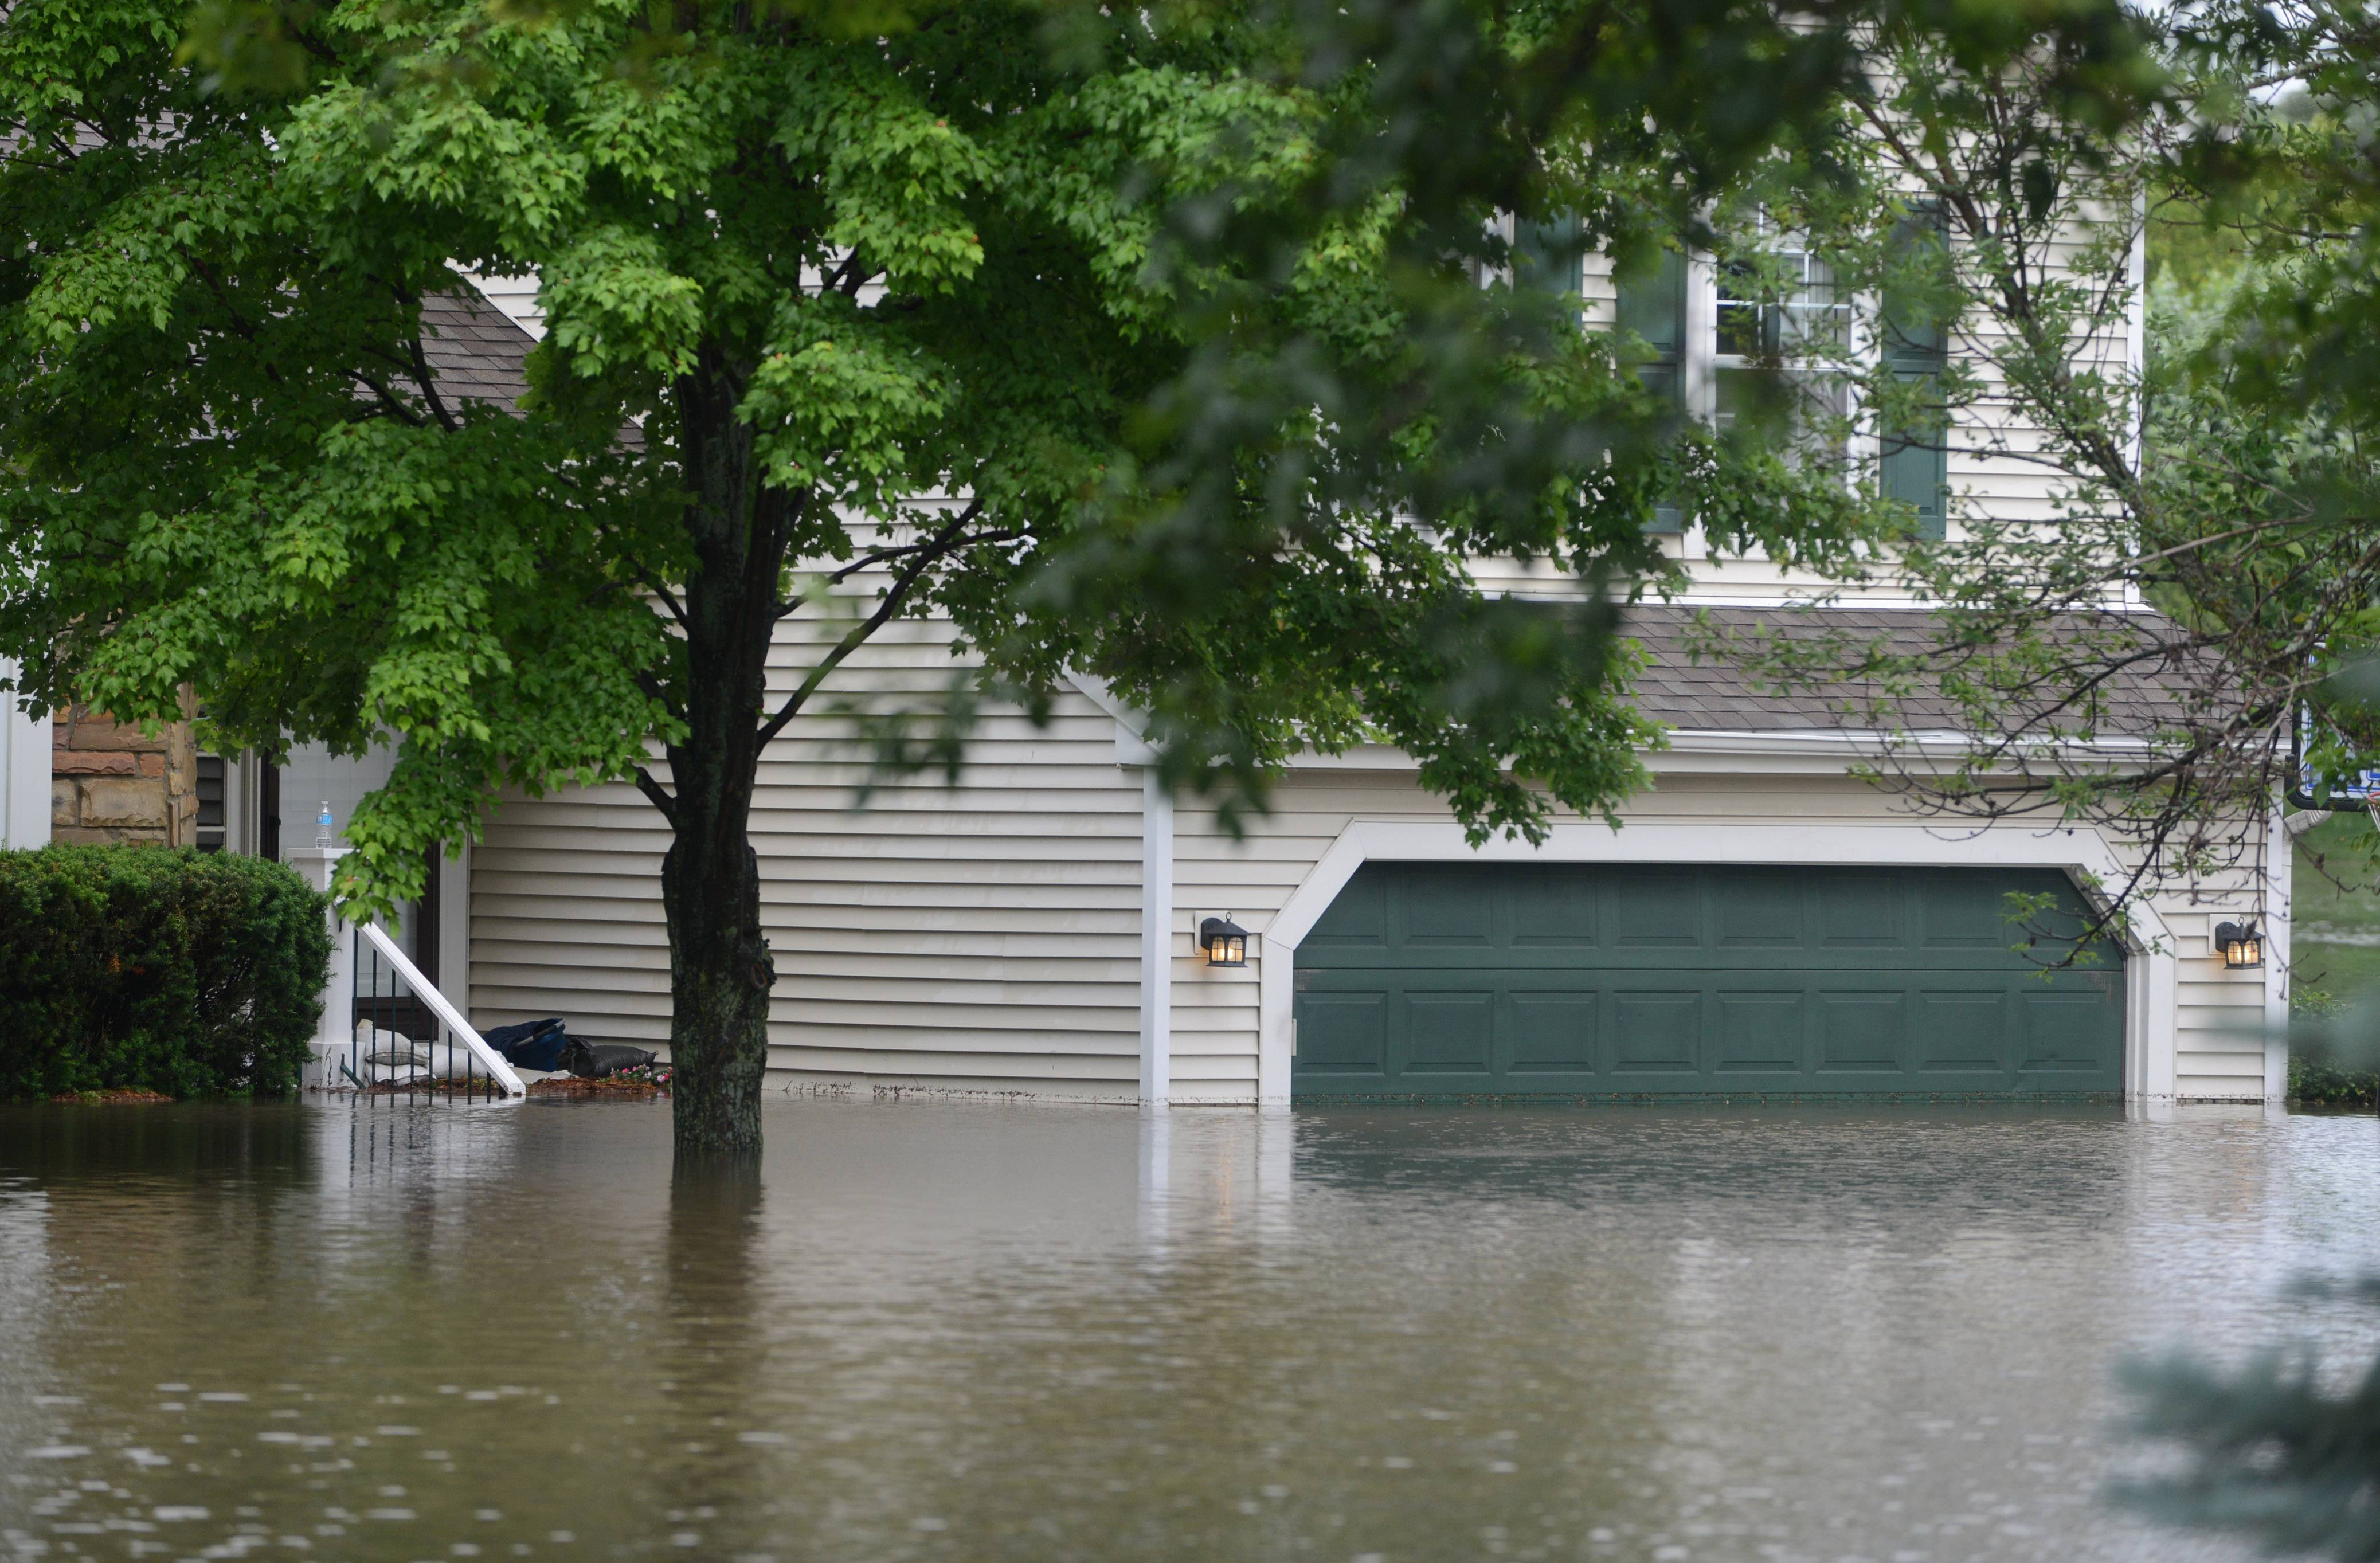 How to pay for drainage upgrades in flood-prone areas an issue in Lake Zurich